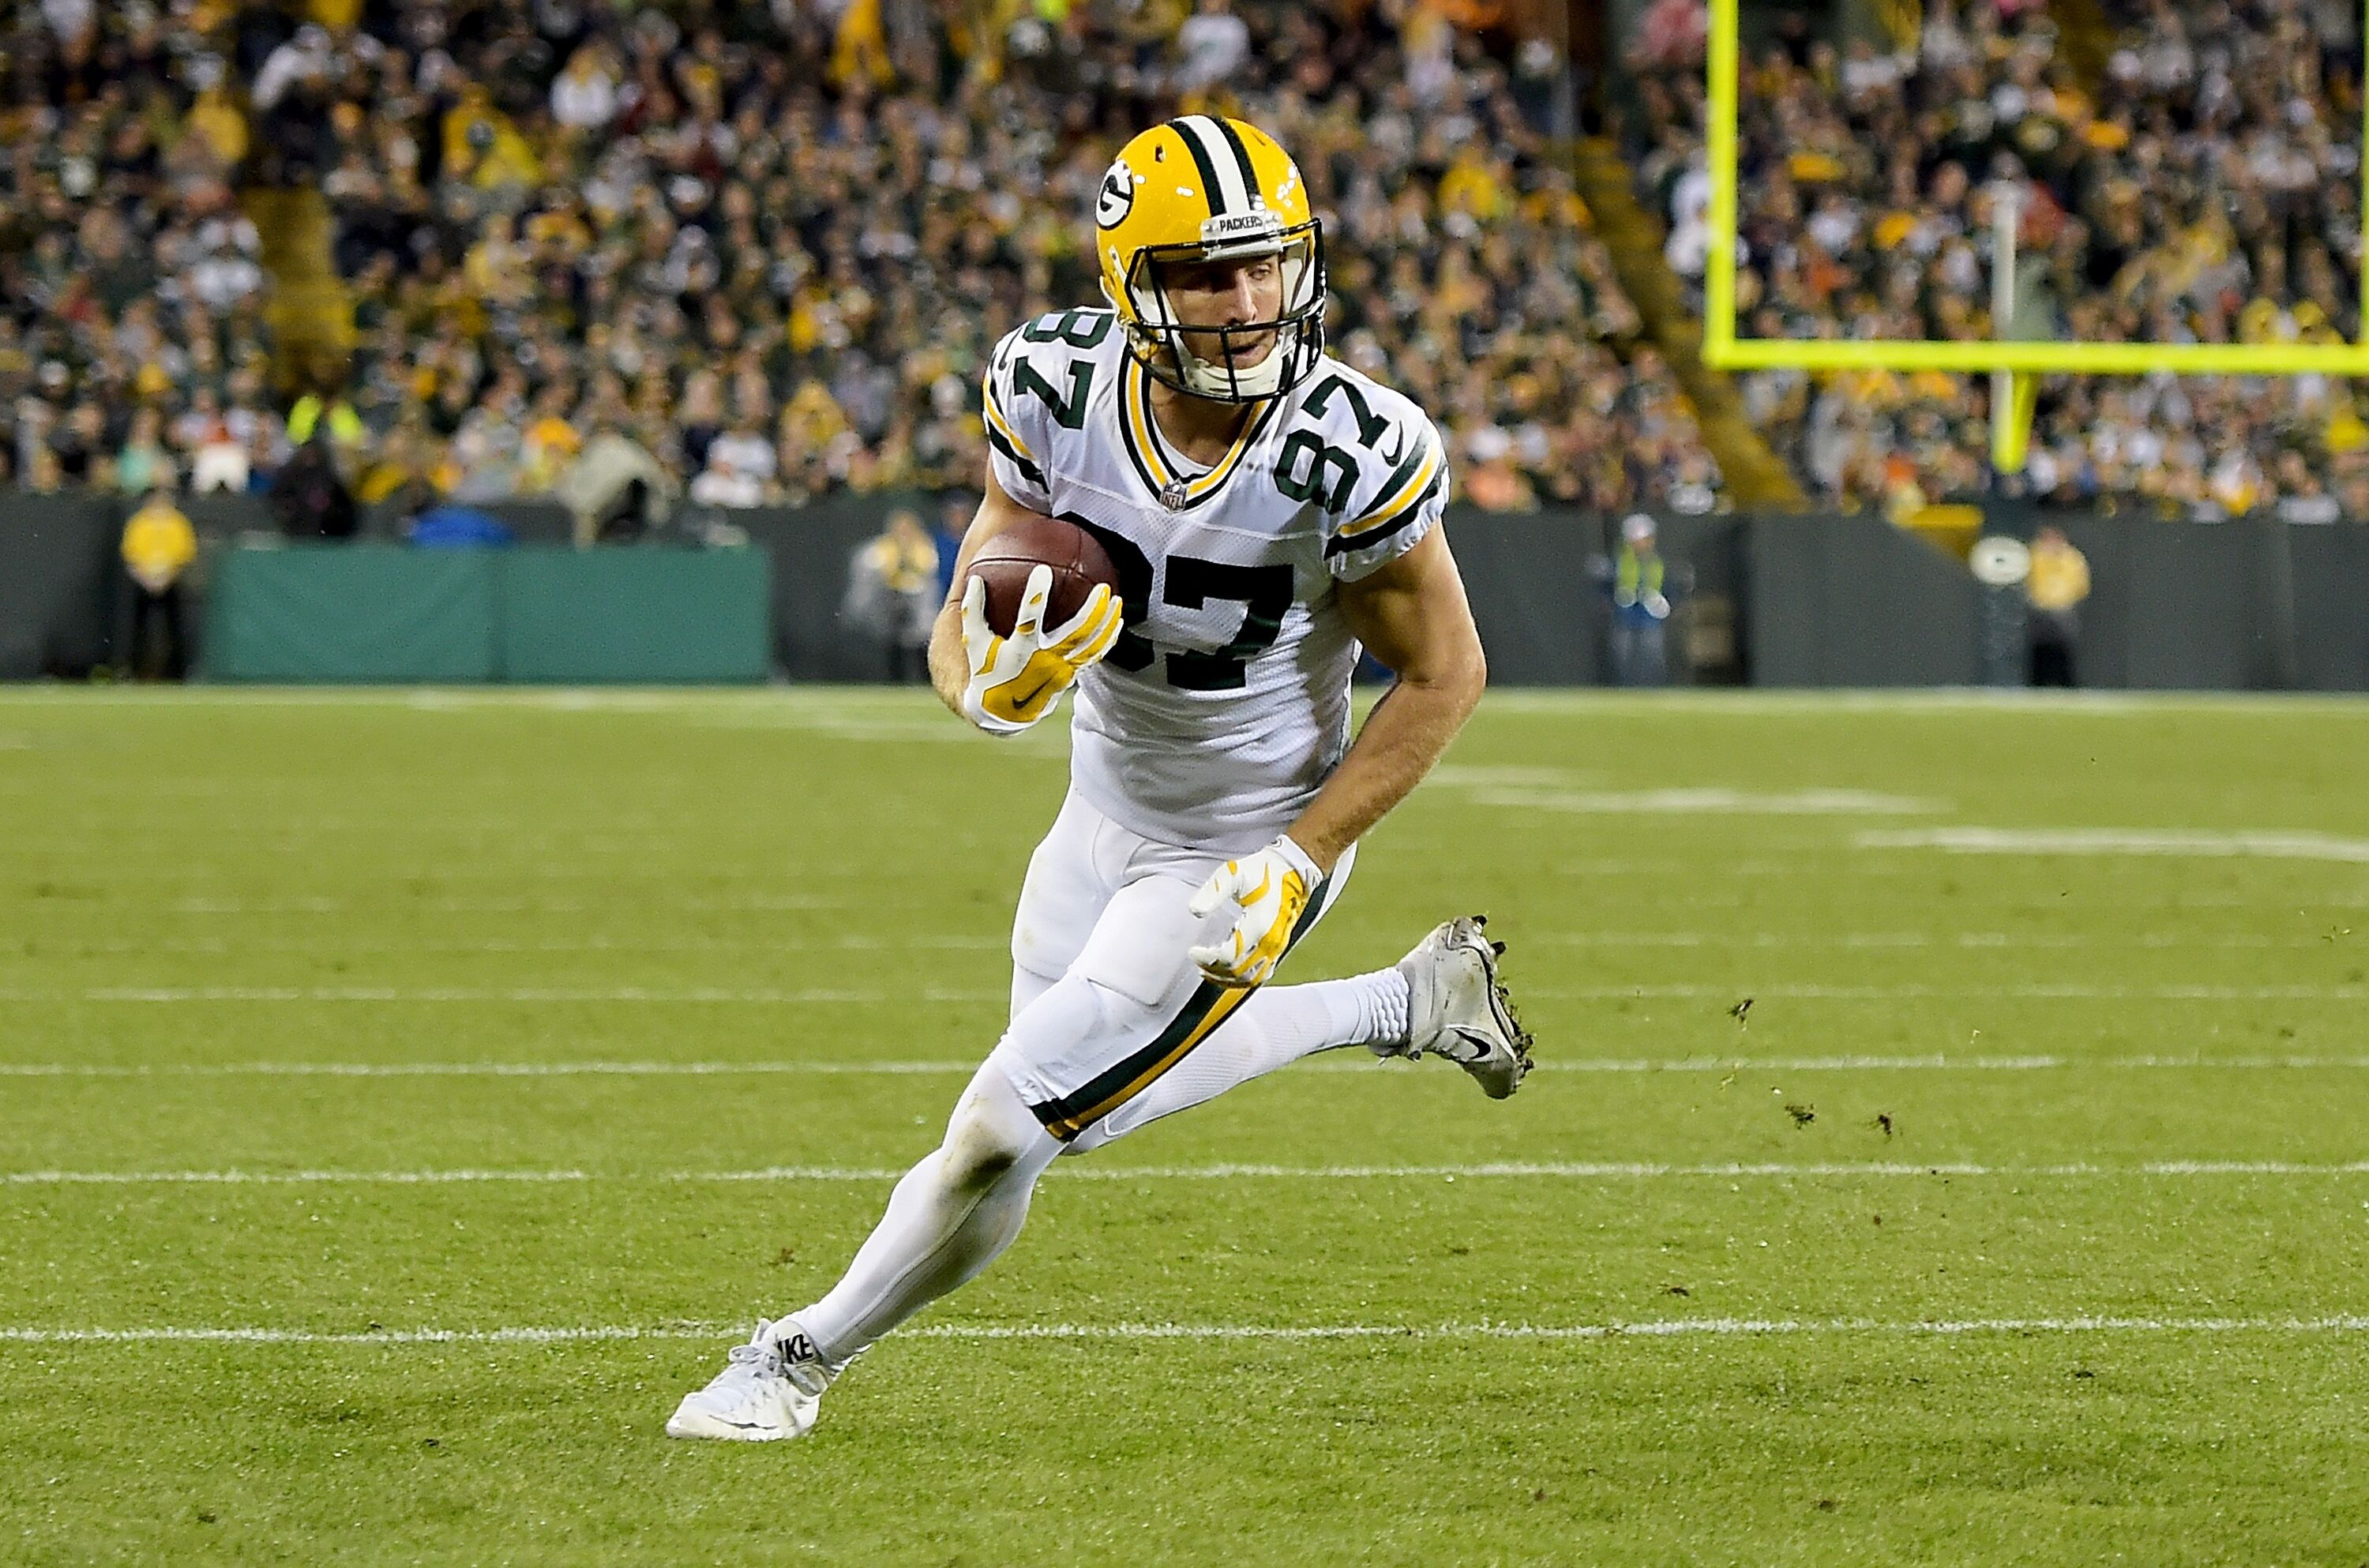 The latest stats facts news and notes on Jordy Nelson of the Oakland Raiders